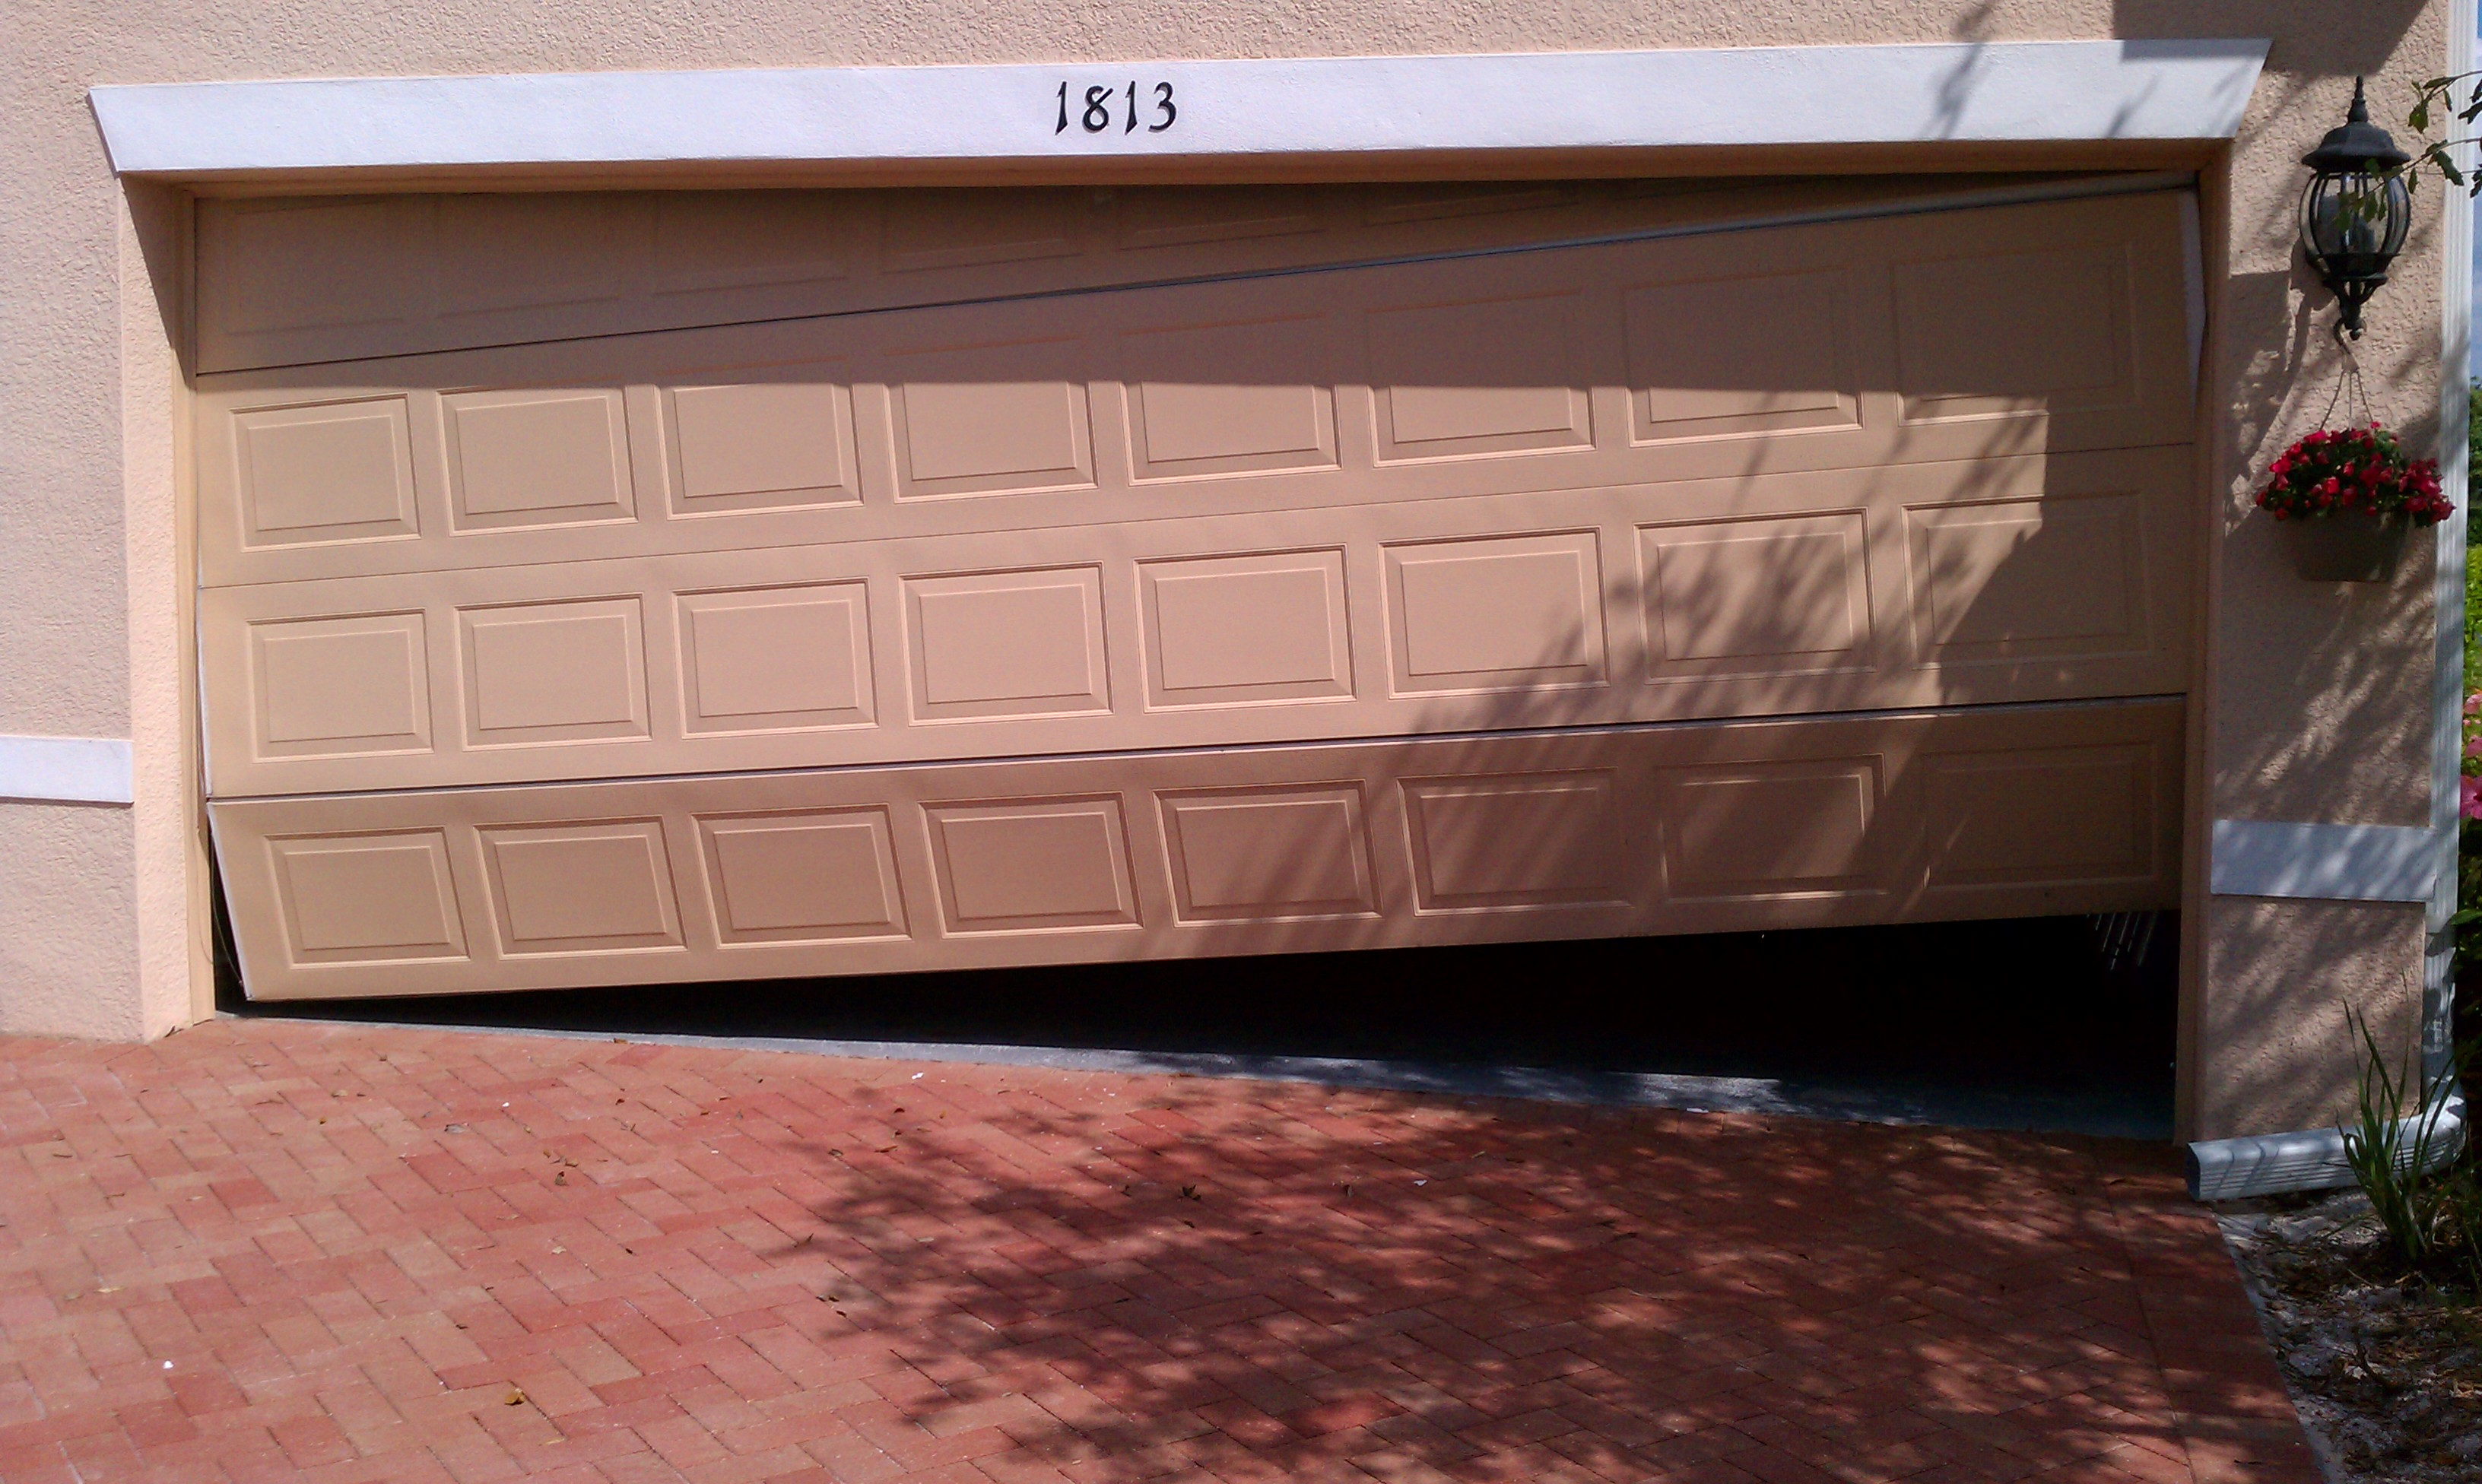 Charming Out Of Place Garage Door